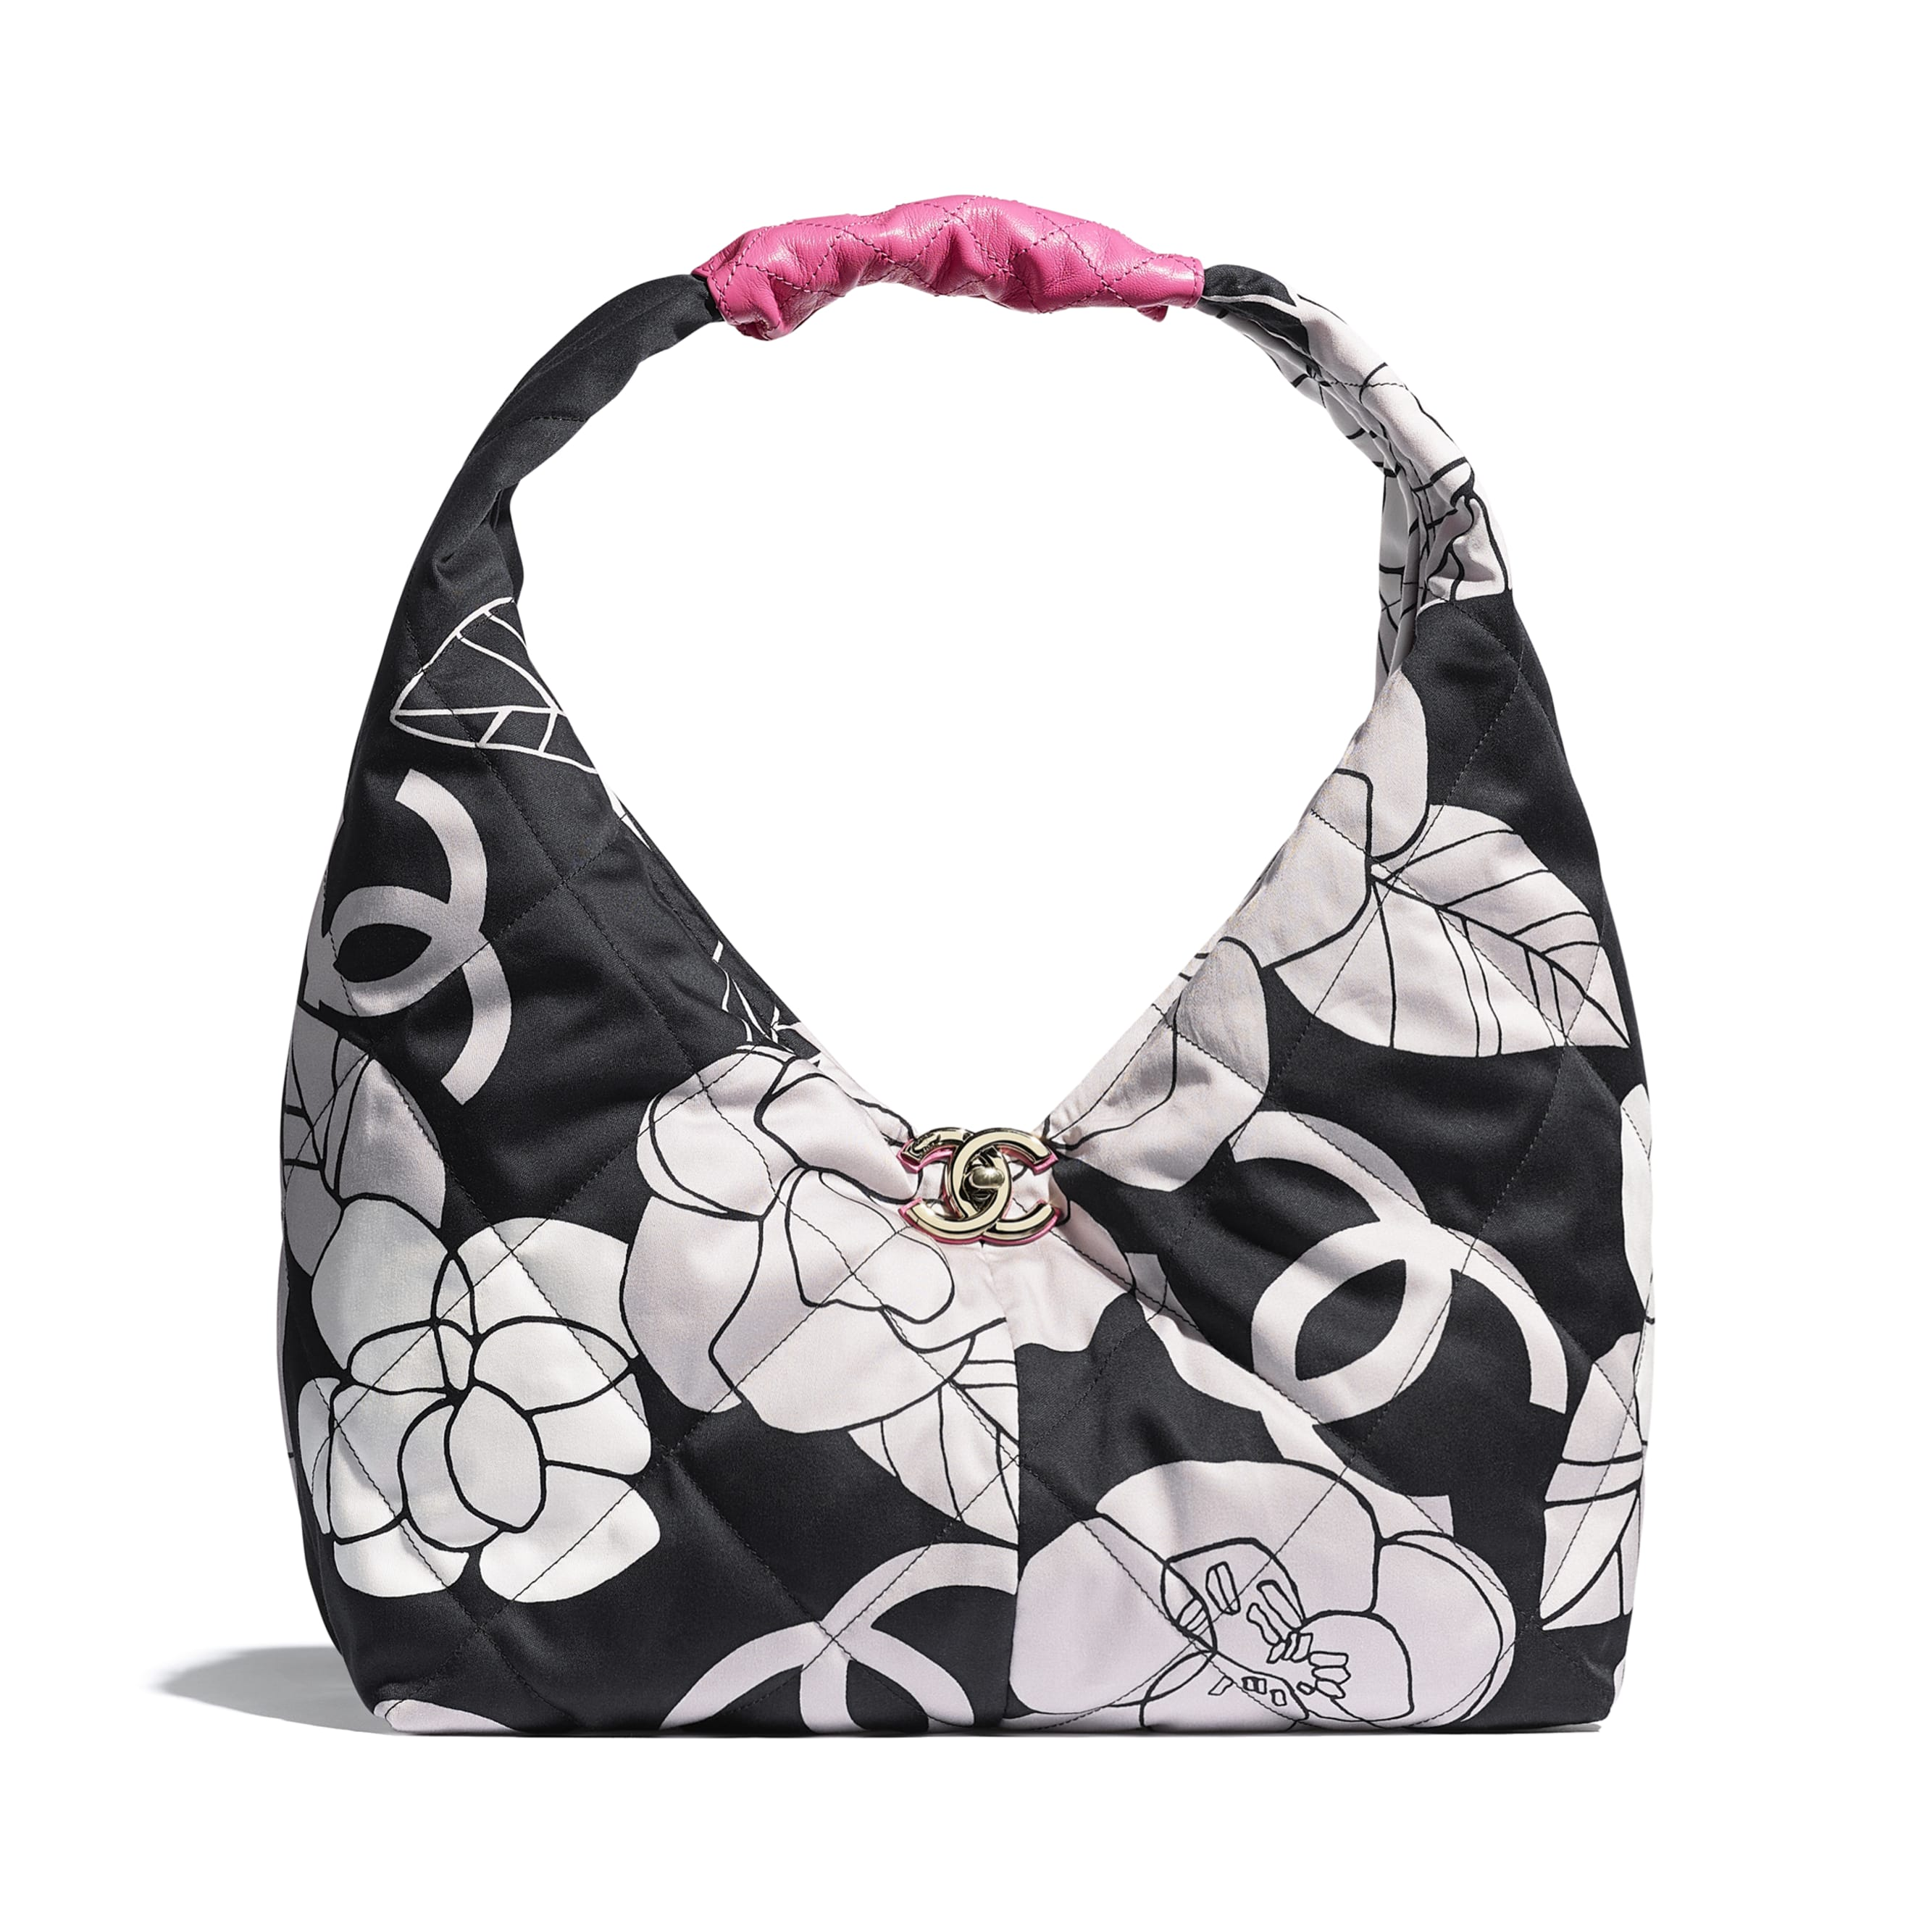 Small Hobo Bag - White, Black & Pink - Cotton Canvas, Calfskin & Gold-Tone Metal - CHANEL - Default view - see standard sized version